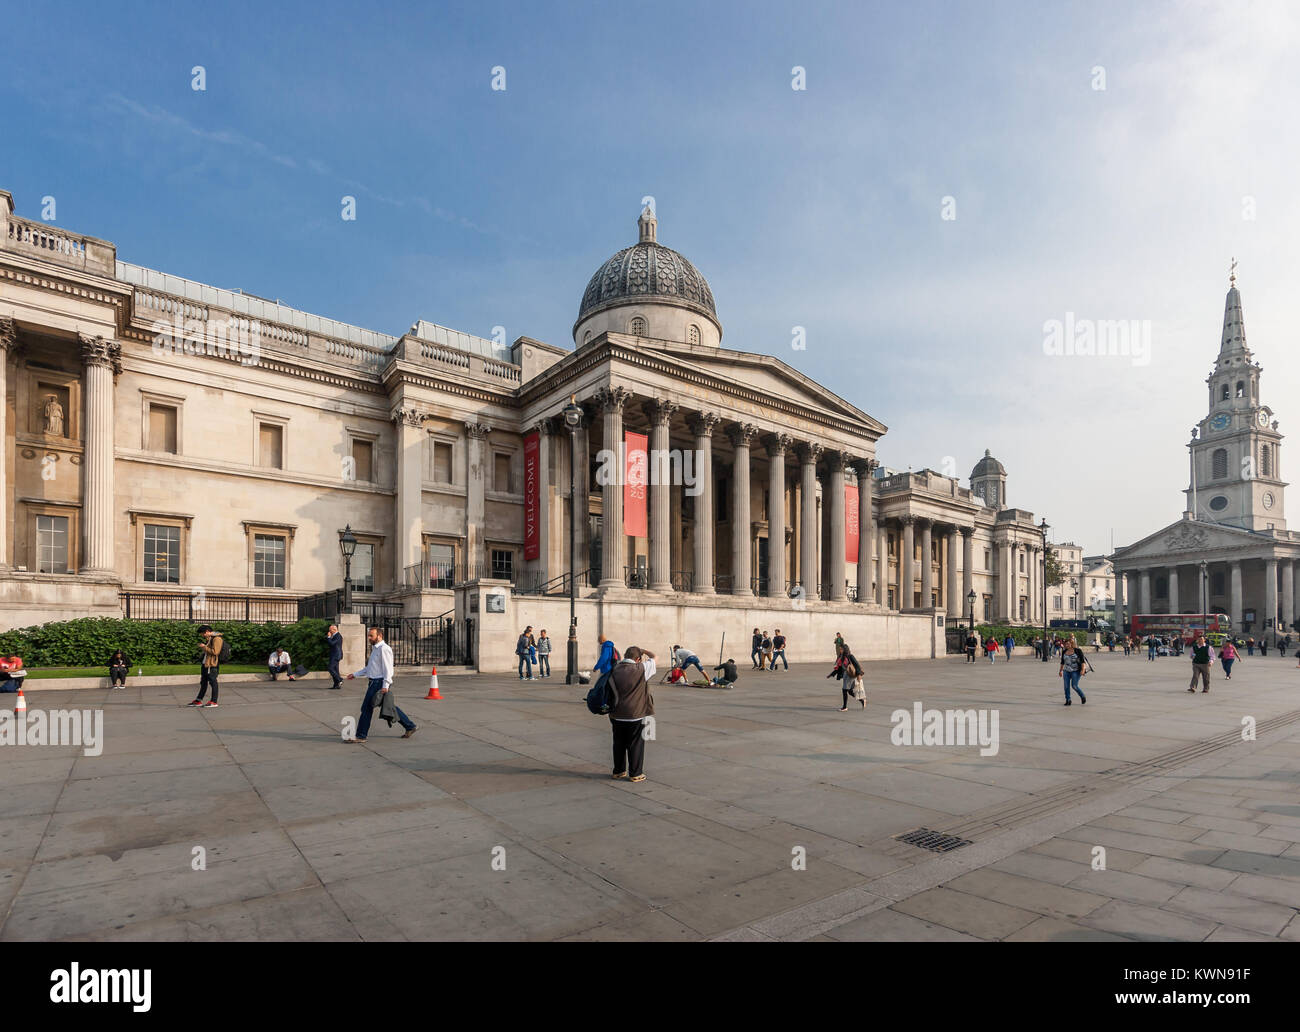 National Gallery Building In London Facade On Trafalgar Square By William Wilkins 1832